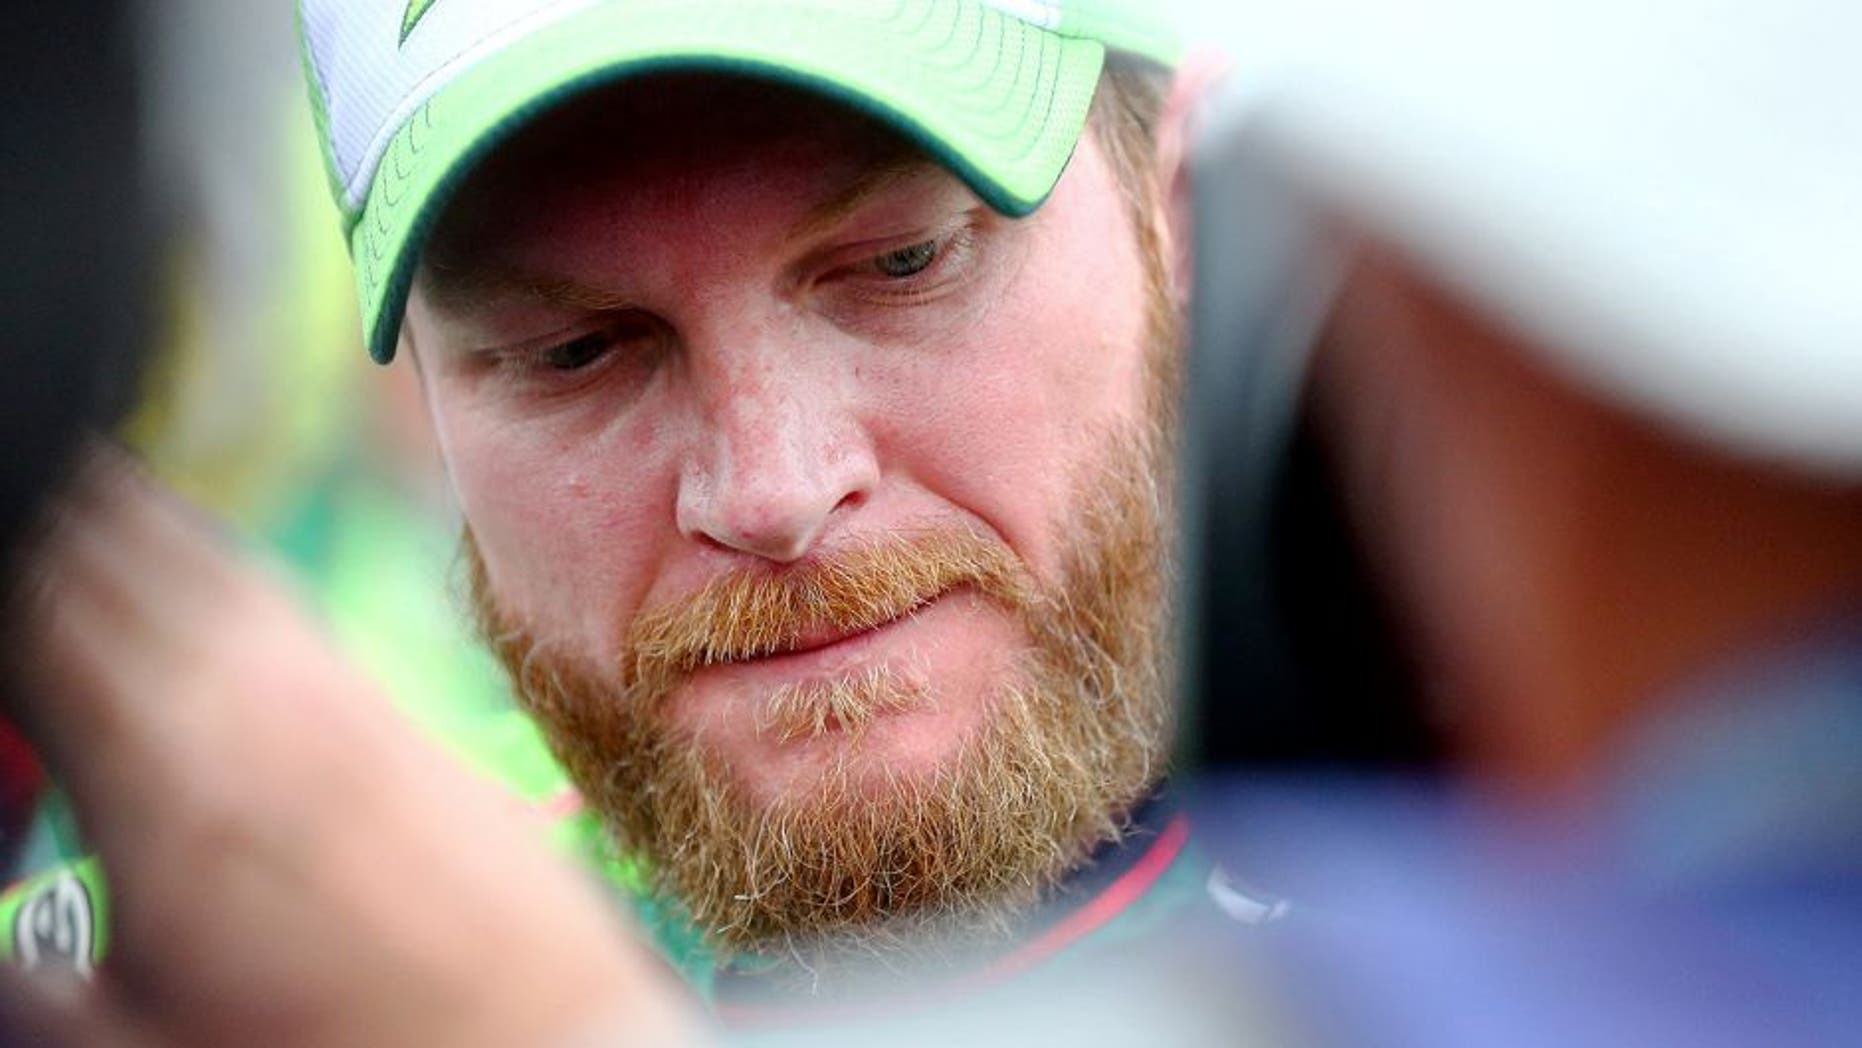 TALLADEGA, AL - OCTOBER 25: Dale Earnhardt Jr., driver of the #88 Diet Mountain Dew Chevrolet, looks on after the NASCAR Sprint Cup Series CampingWorld.com 500 at Talladega Superspeedway on October 25, 2015 in Talladega, Alabama. (Photo by Sarah Crabill/Getty Images)